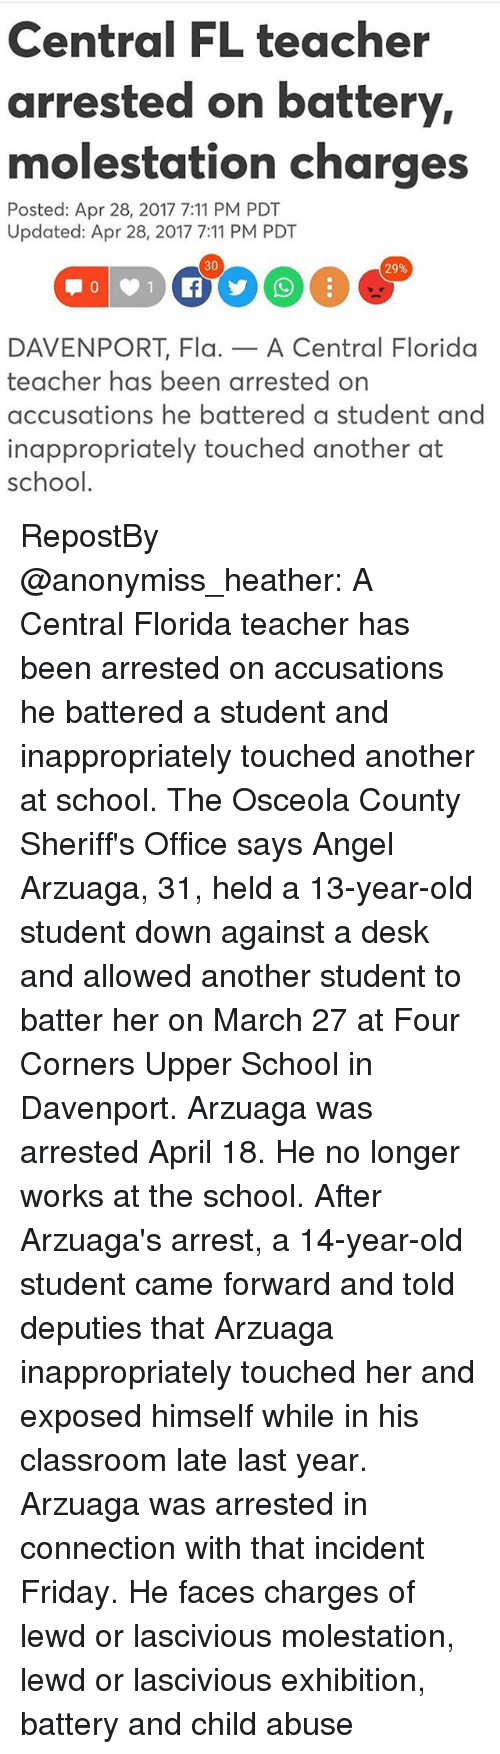 Florida dating violence battery charges